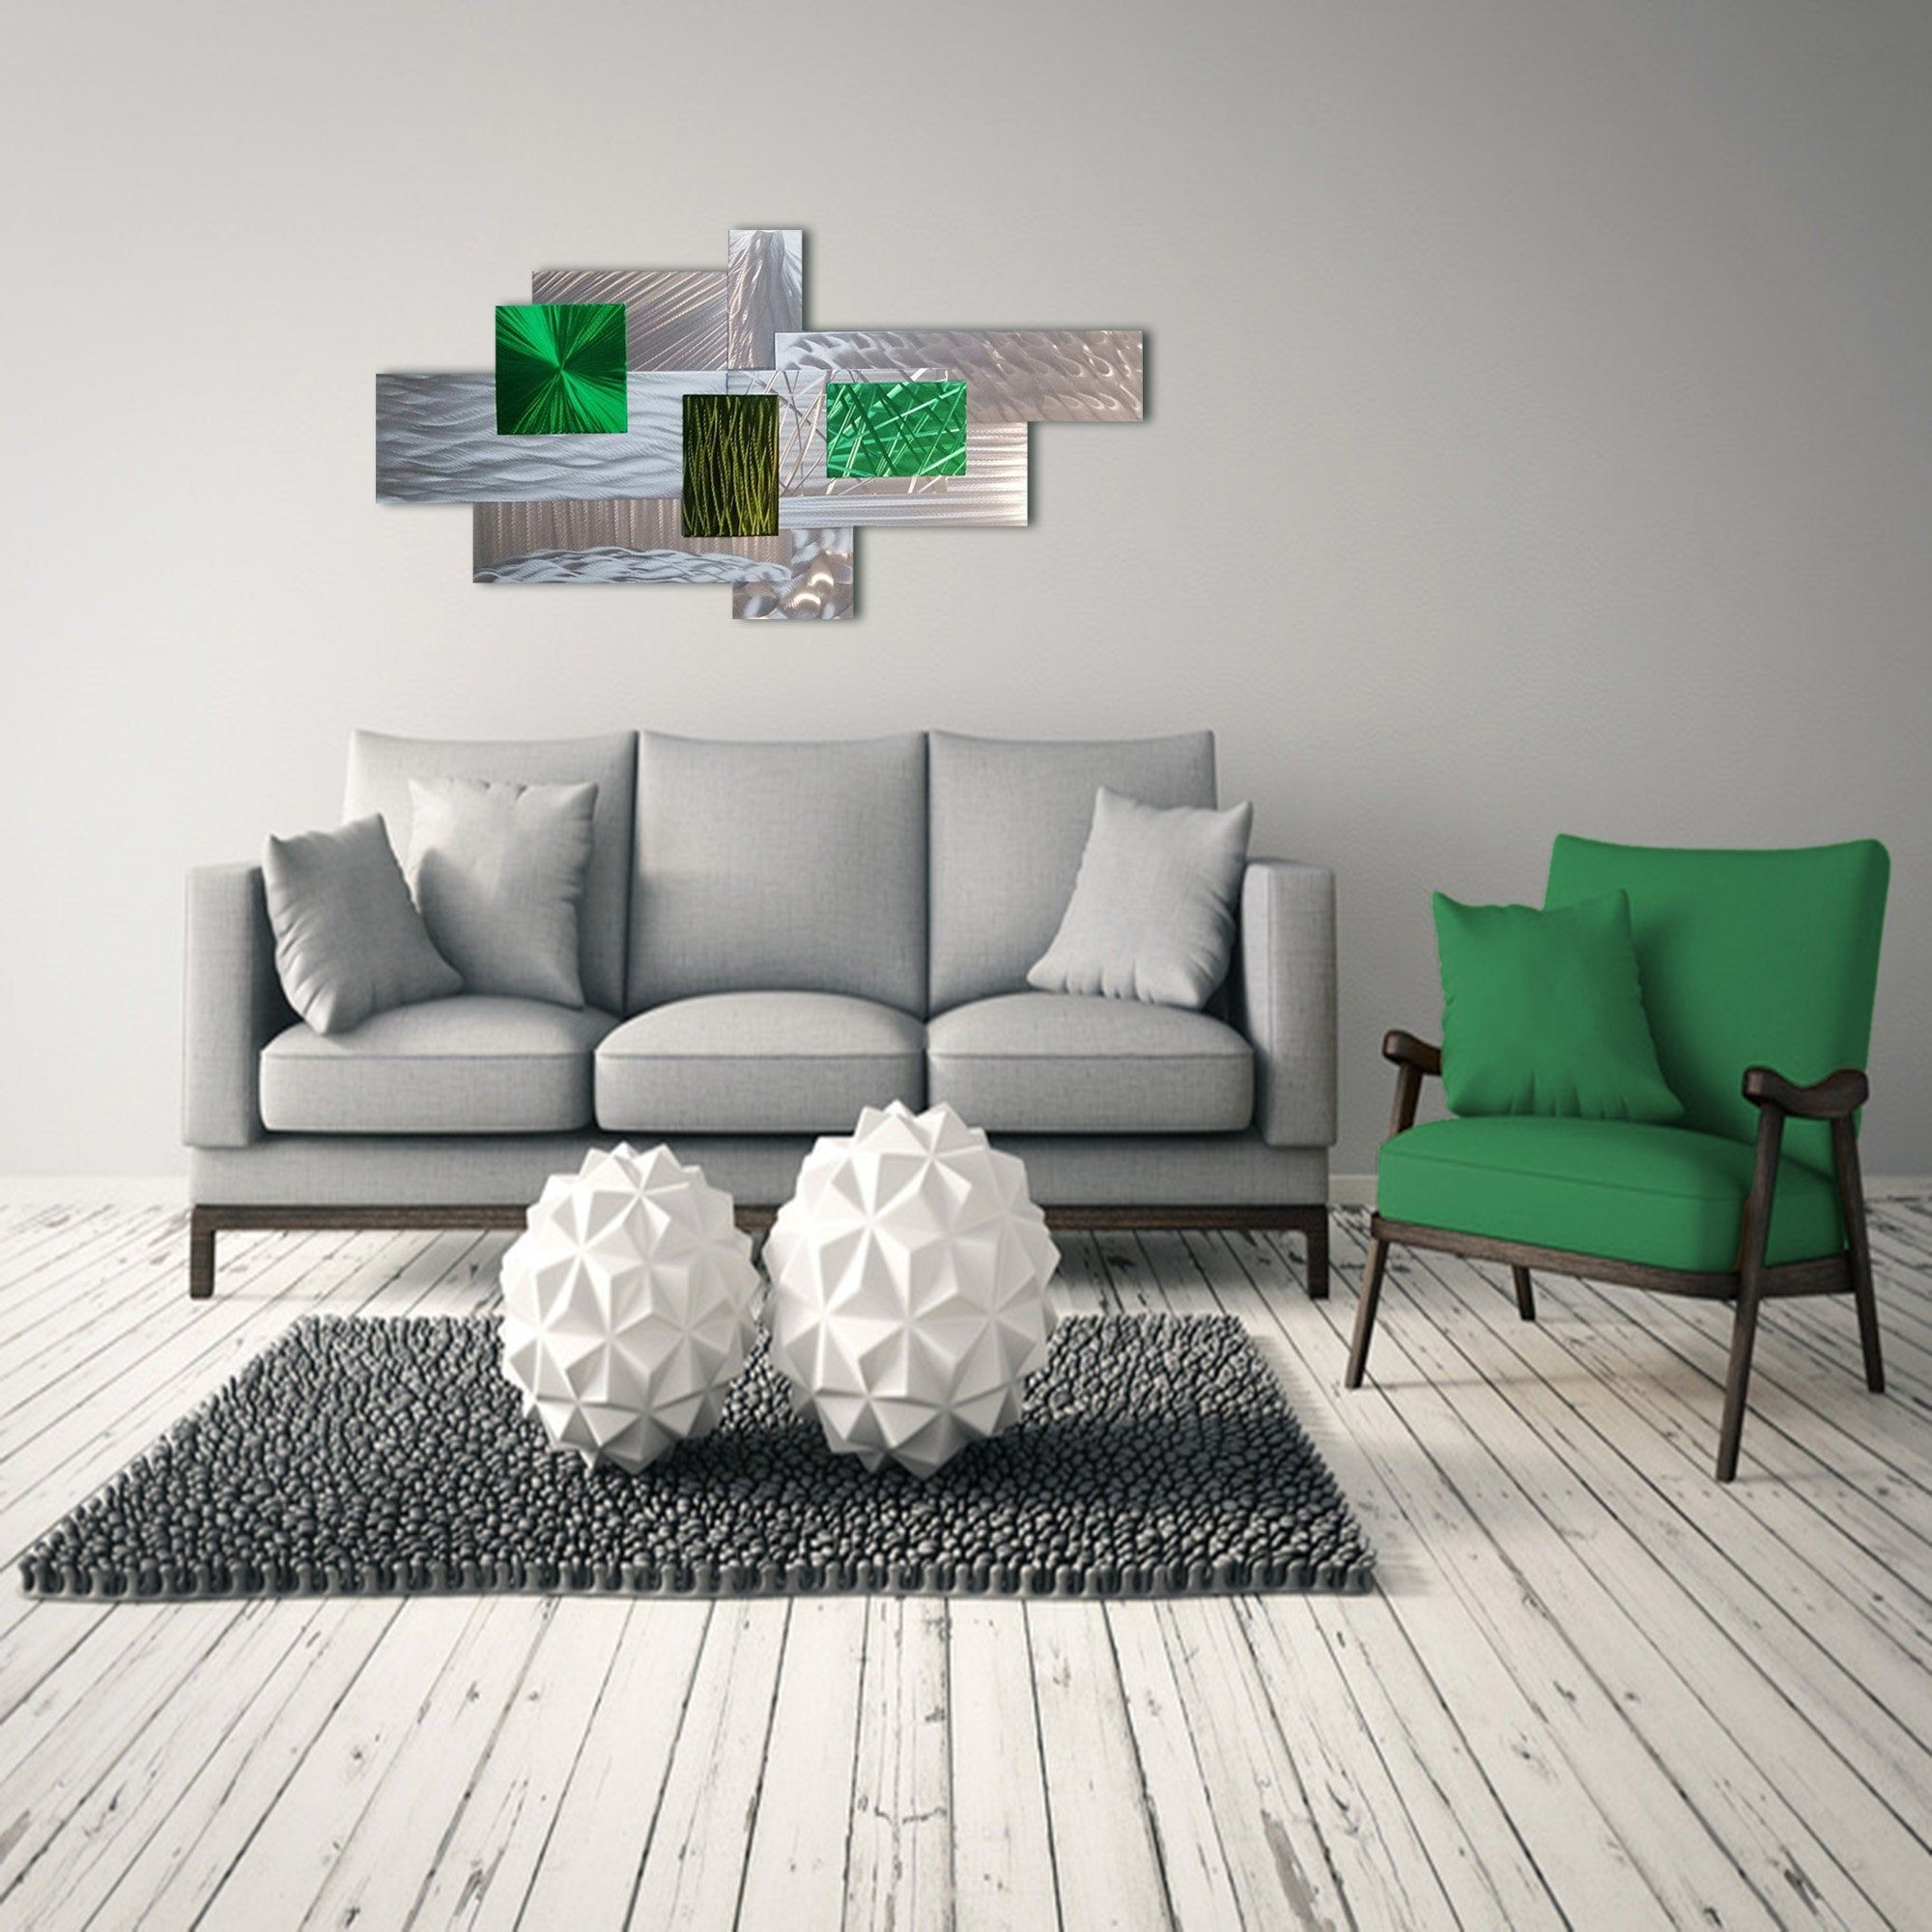 Green Silver Wall Sculpture 3d Metal Wall Art Modern Wall Sculpture Contemporary Wall Art Minimal Wall Decor Abstract Metal Art In 2020 Wall Art Decor Living Room Minimal Wall Decor Large Wall